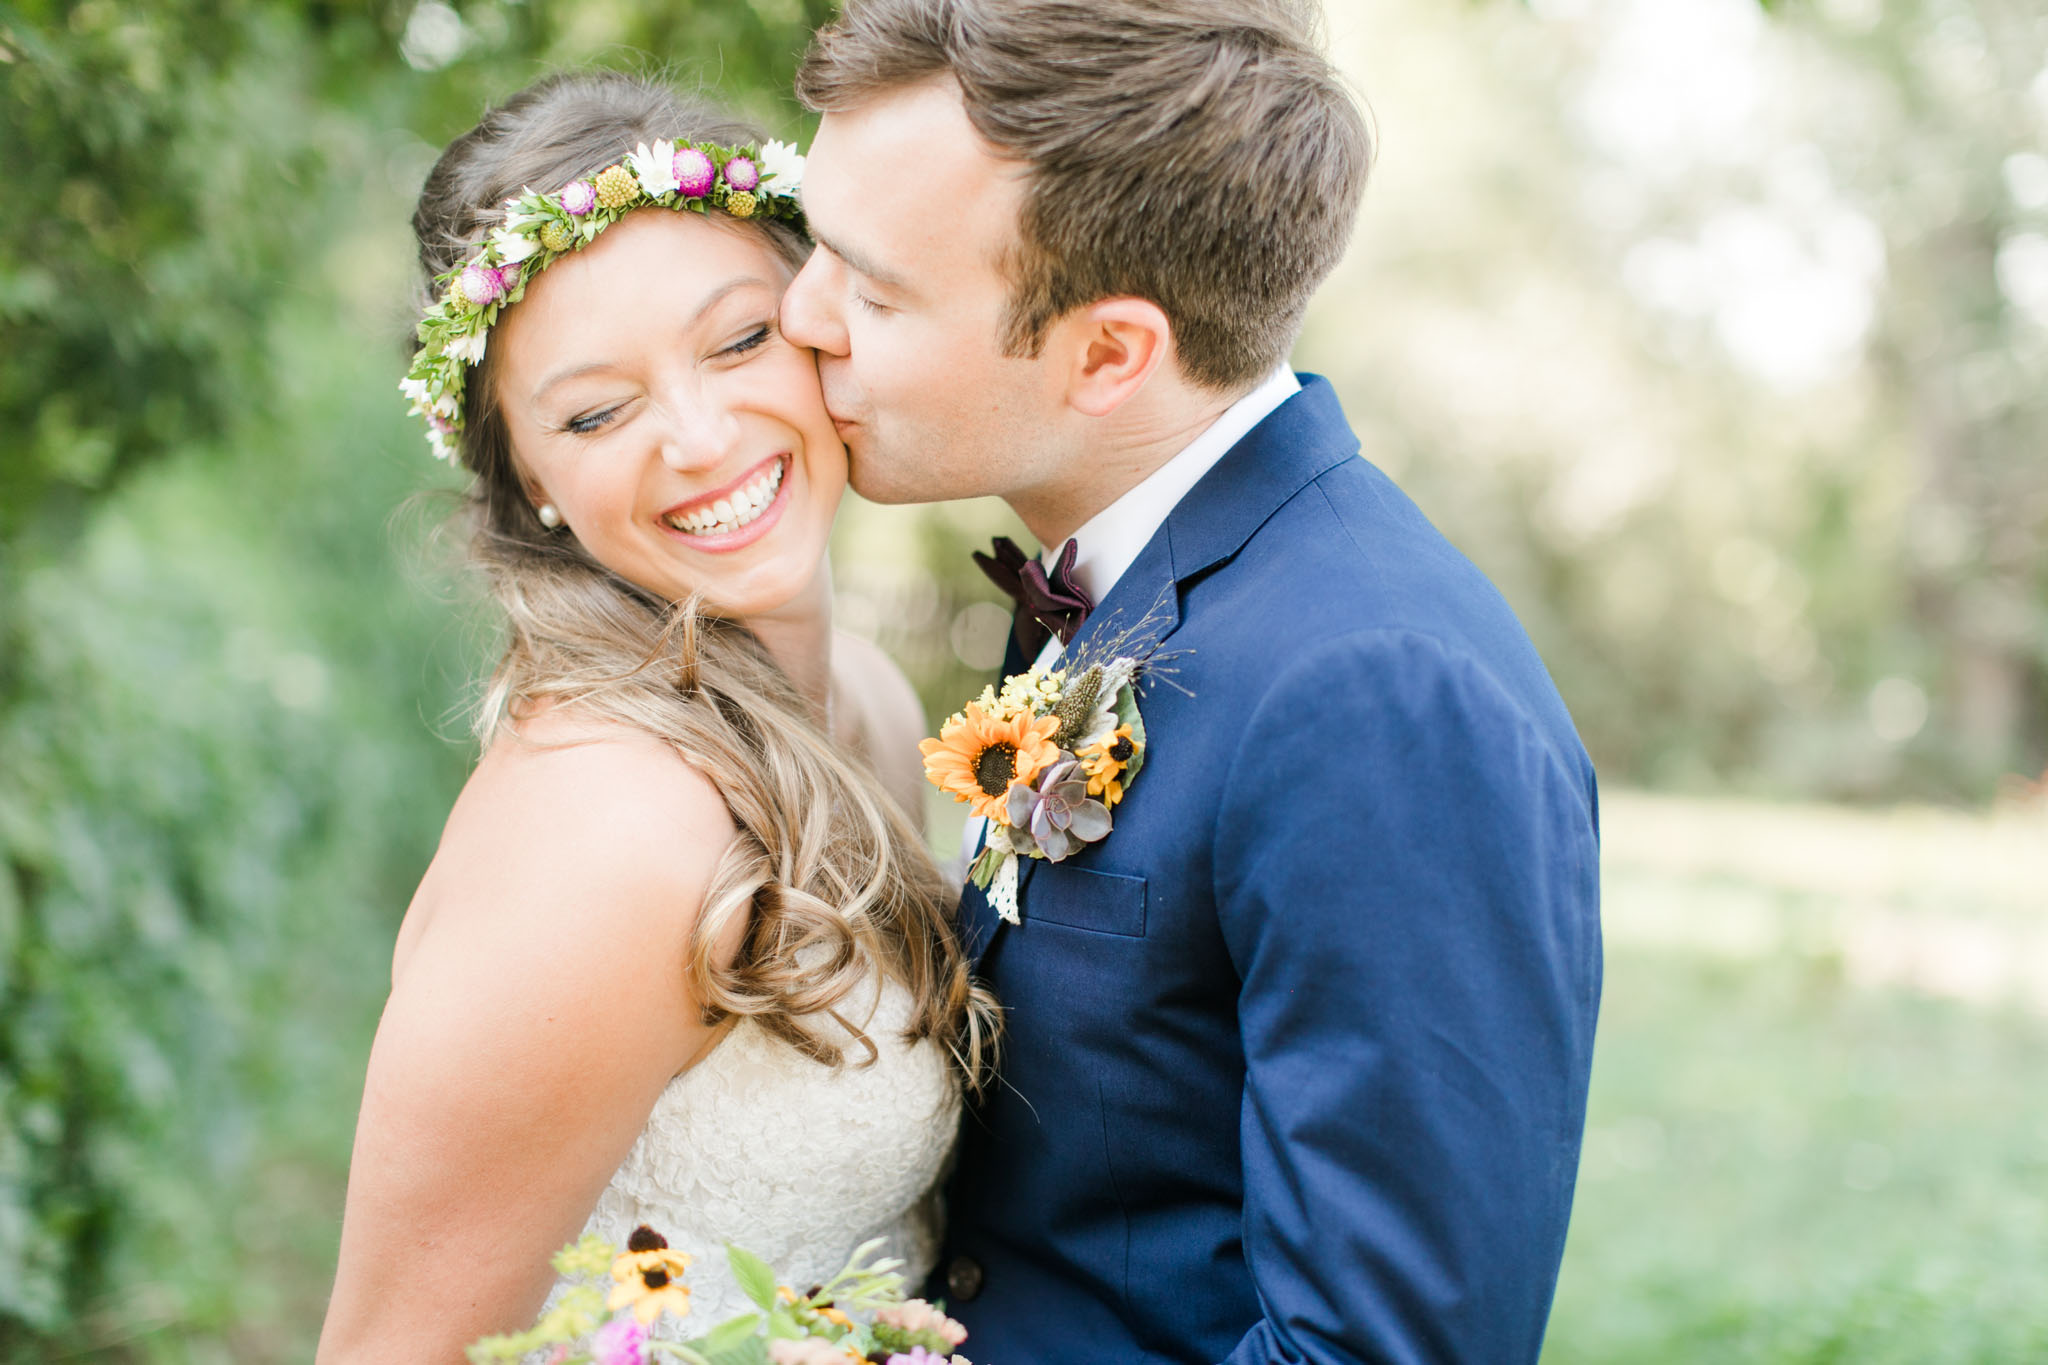 A Boho Garden Wedding in Colorado